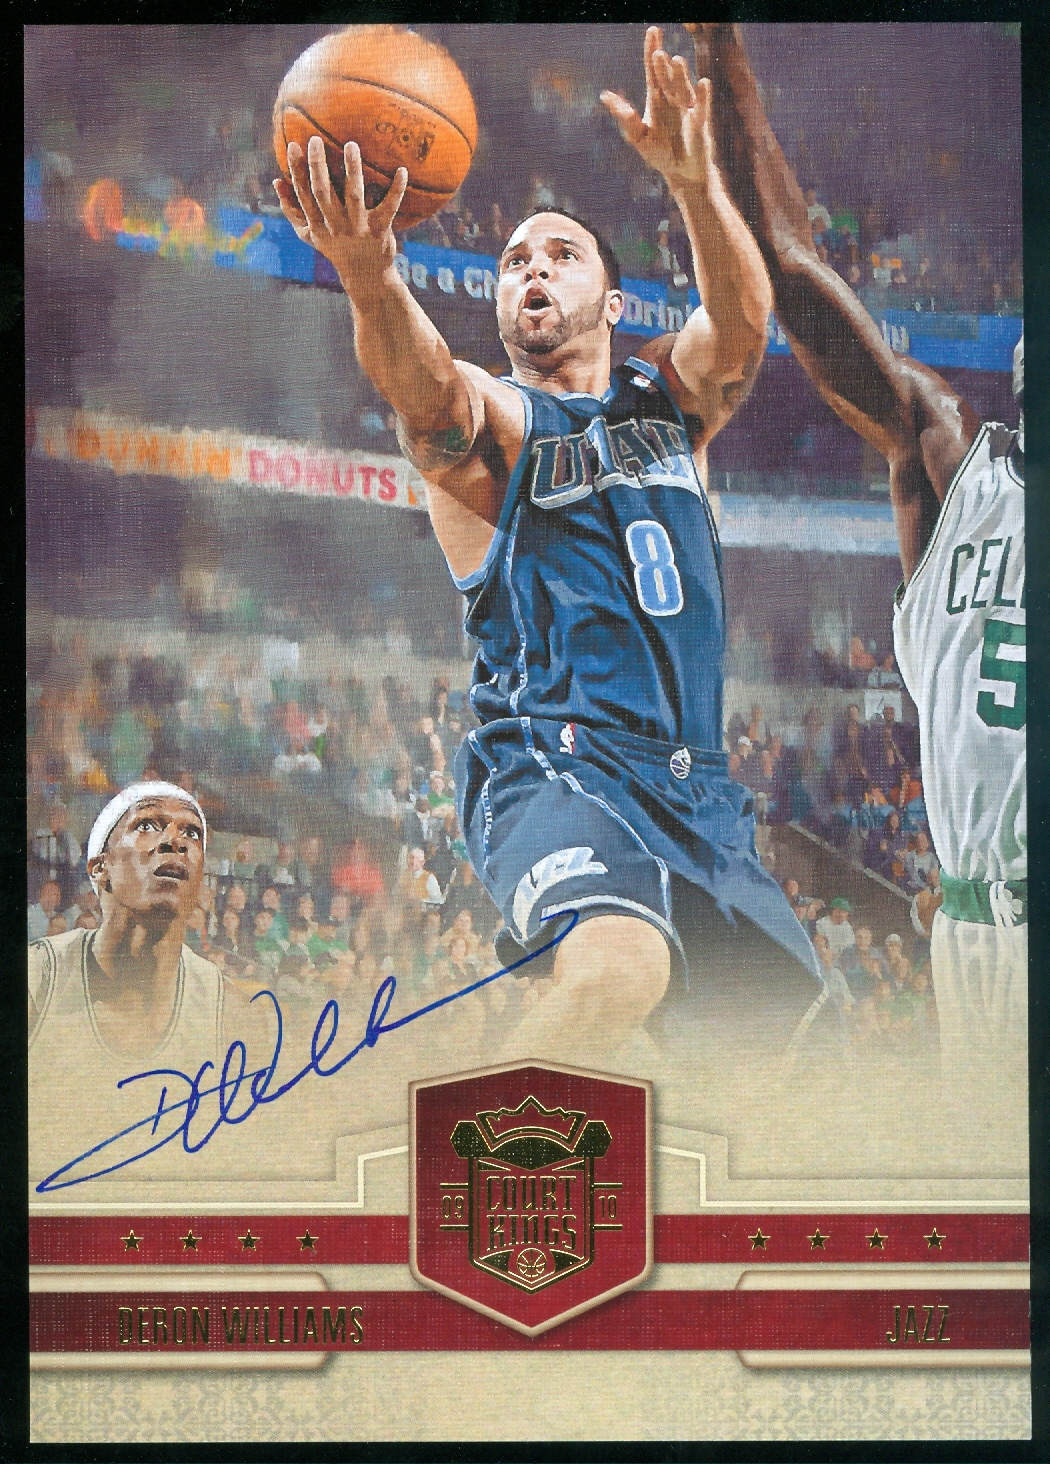 2009-10 Court Kings Jumbo Boxtoppers Autographs #35 Deron Williams/49